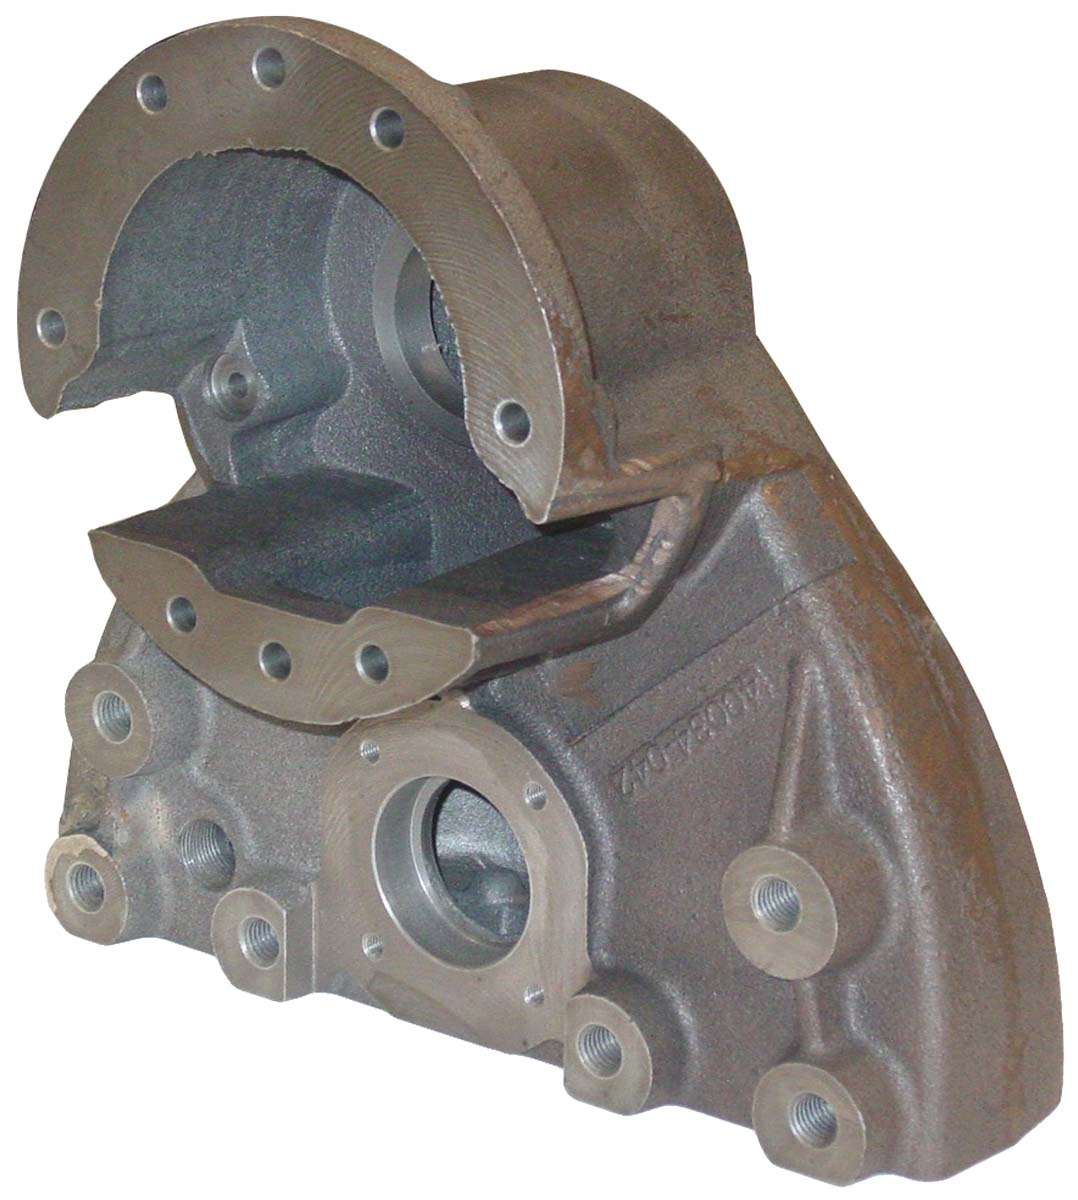 Farmall Cub Replacement Parts : Rear axle housing case ih parts tractor